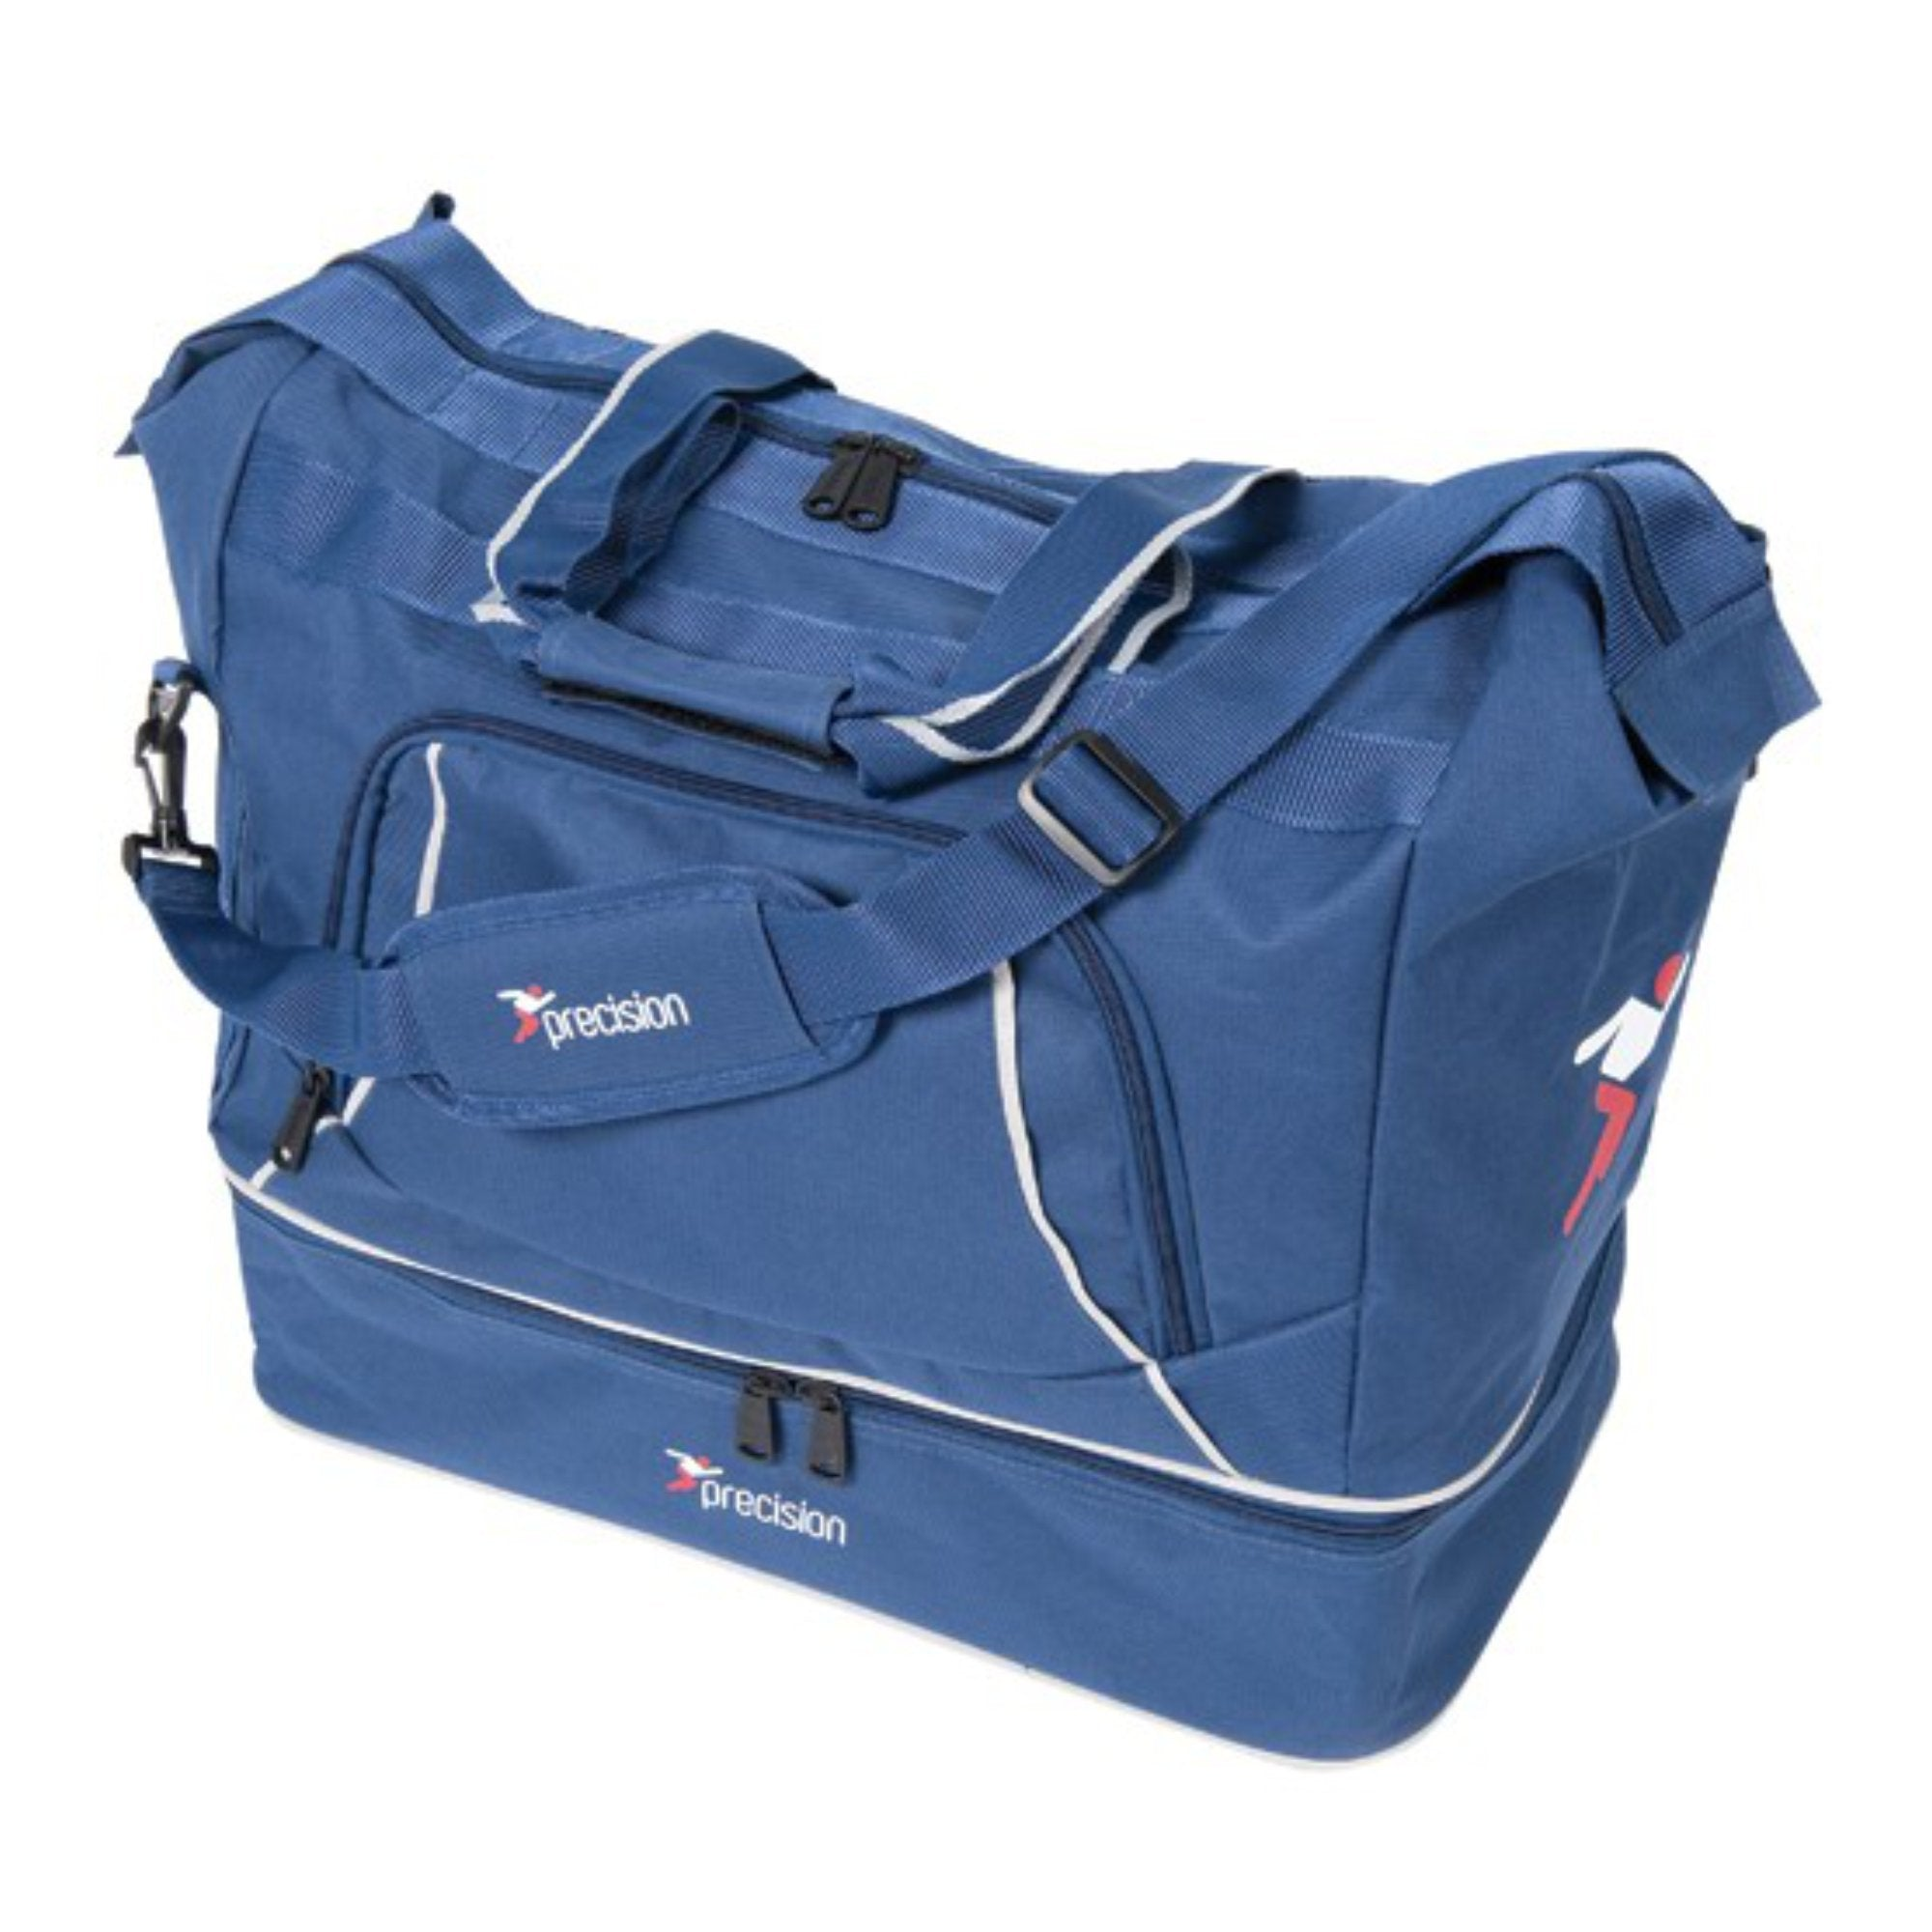 Precision Senior Players Bag - Navy